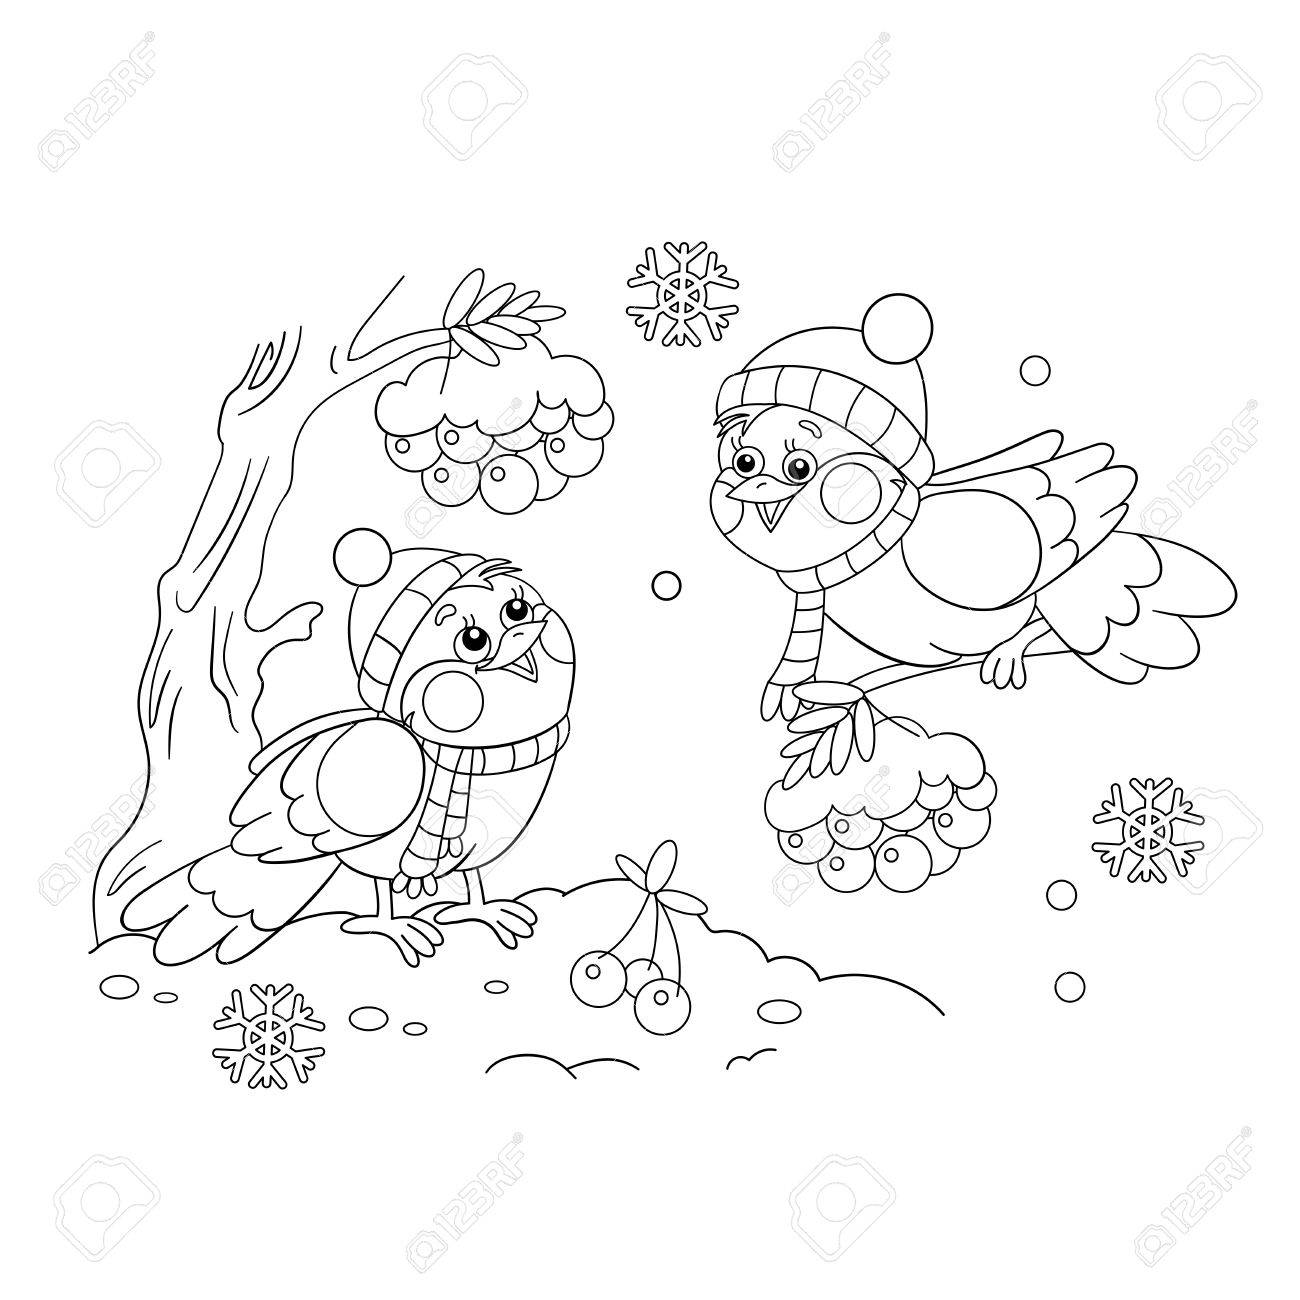 Coloring Page Outline Of funny birds in winter